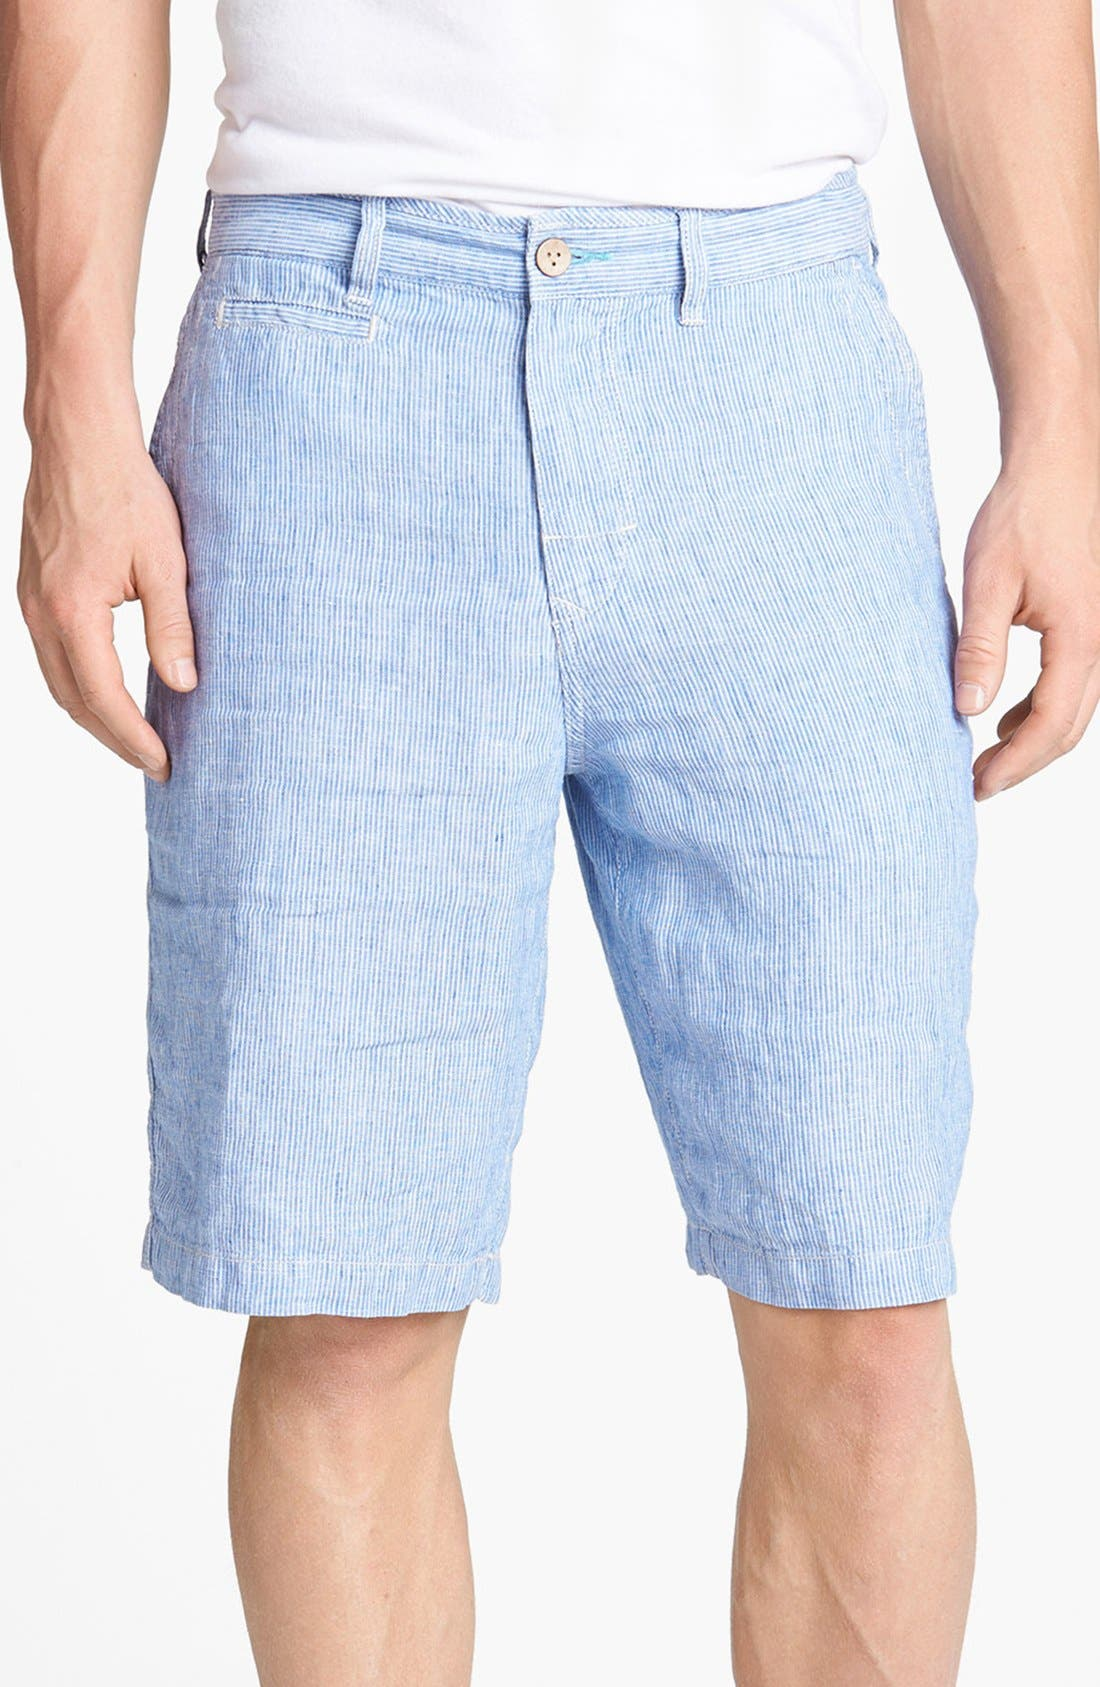 Alternate Image 1 Selected - Tommy Bahama 'Line of the Times' Relaxed Fit Striped Linen Shorts